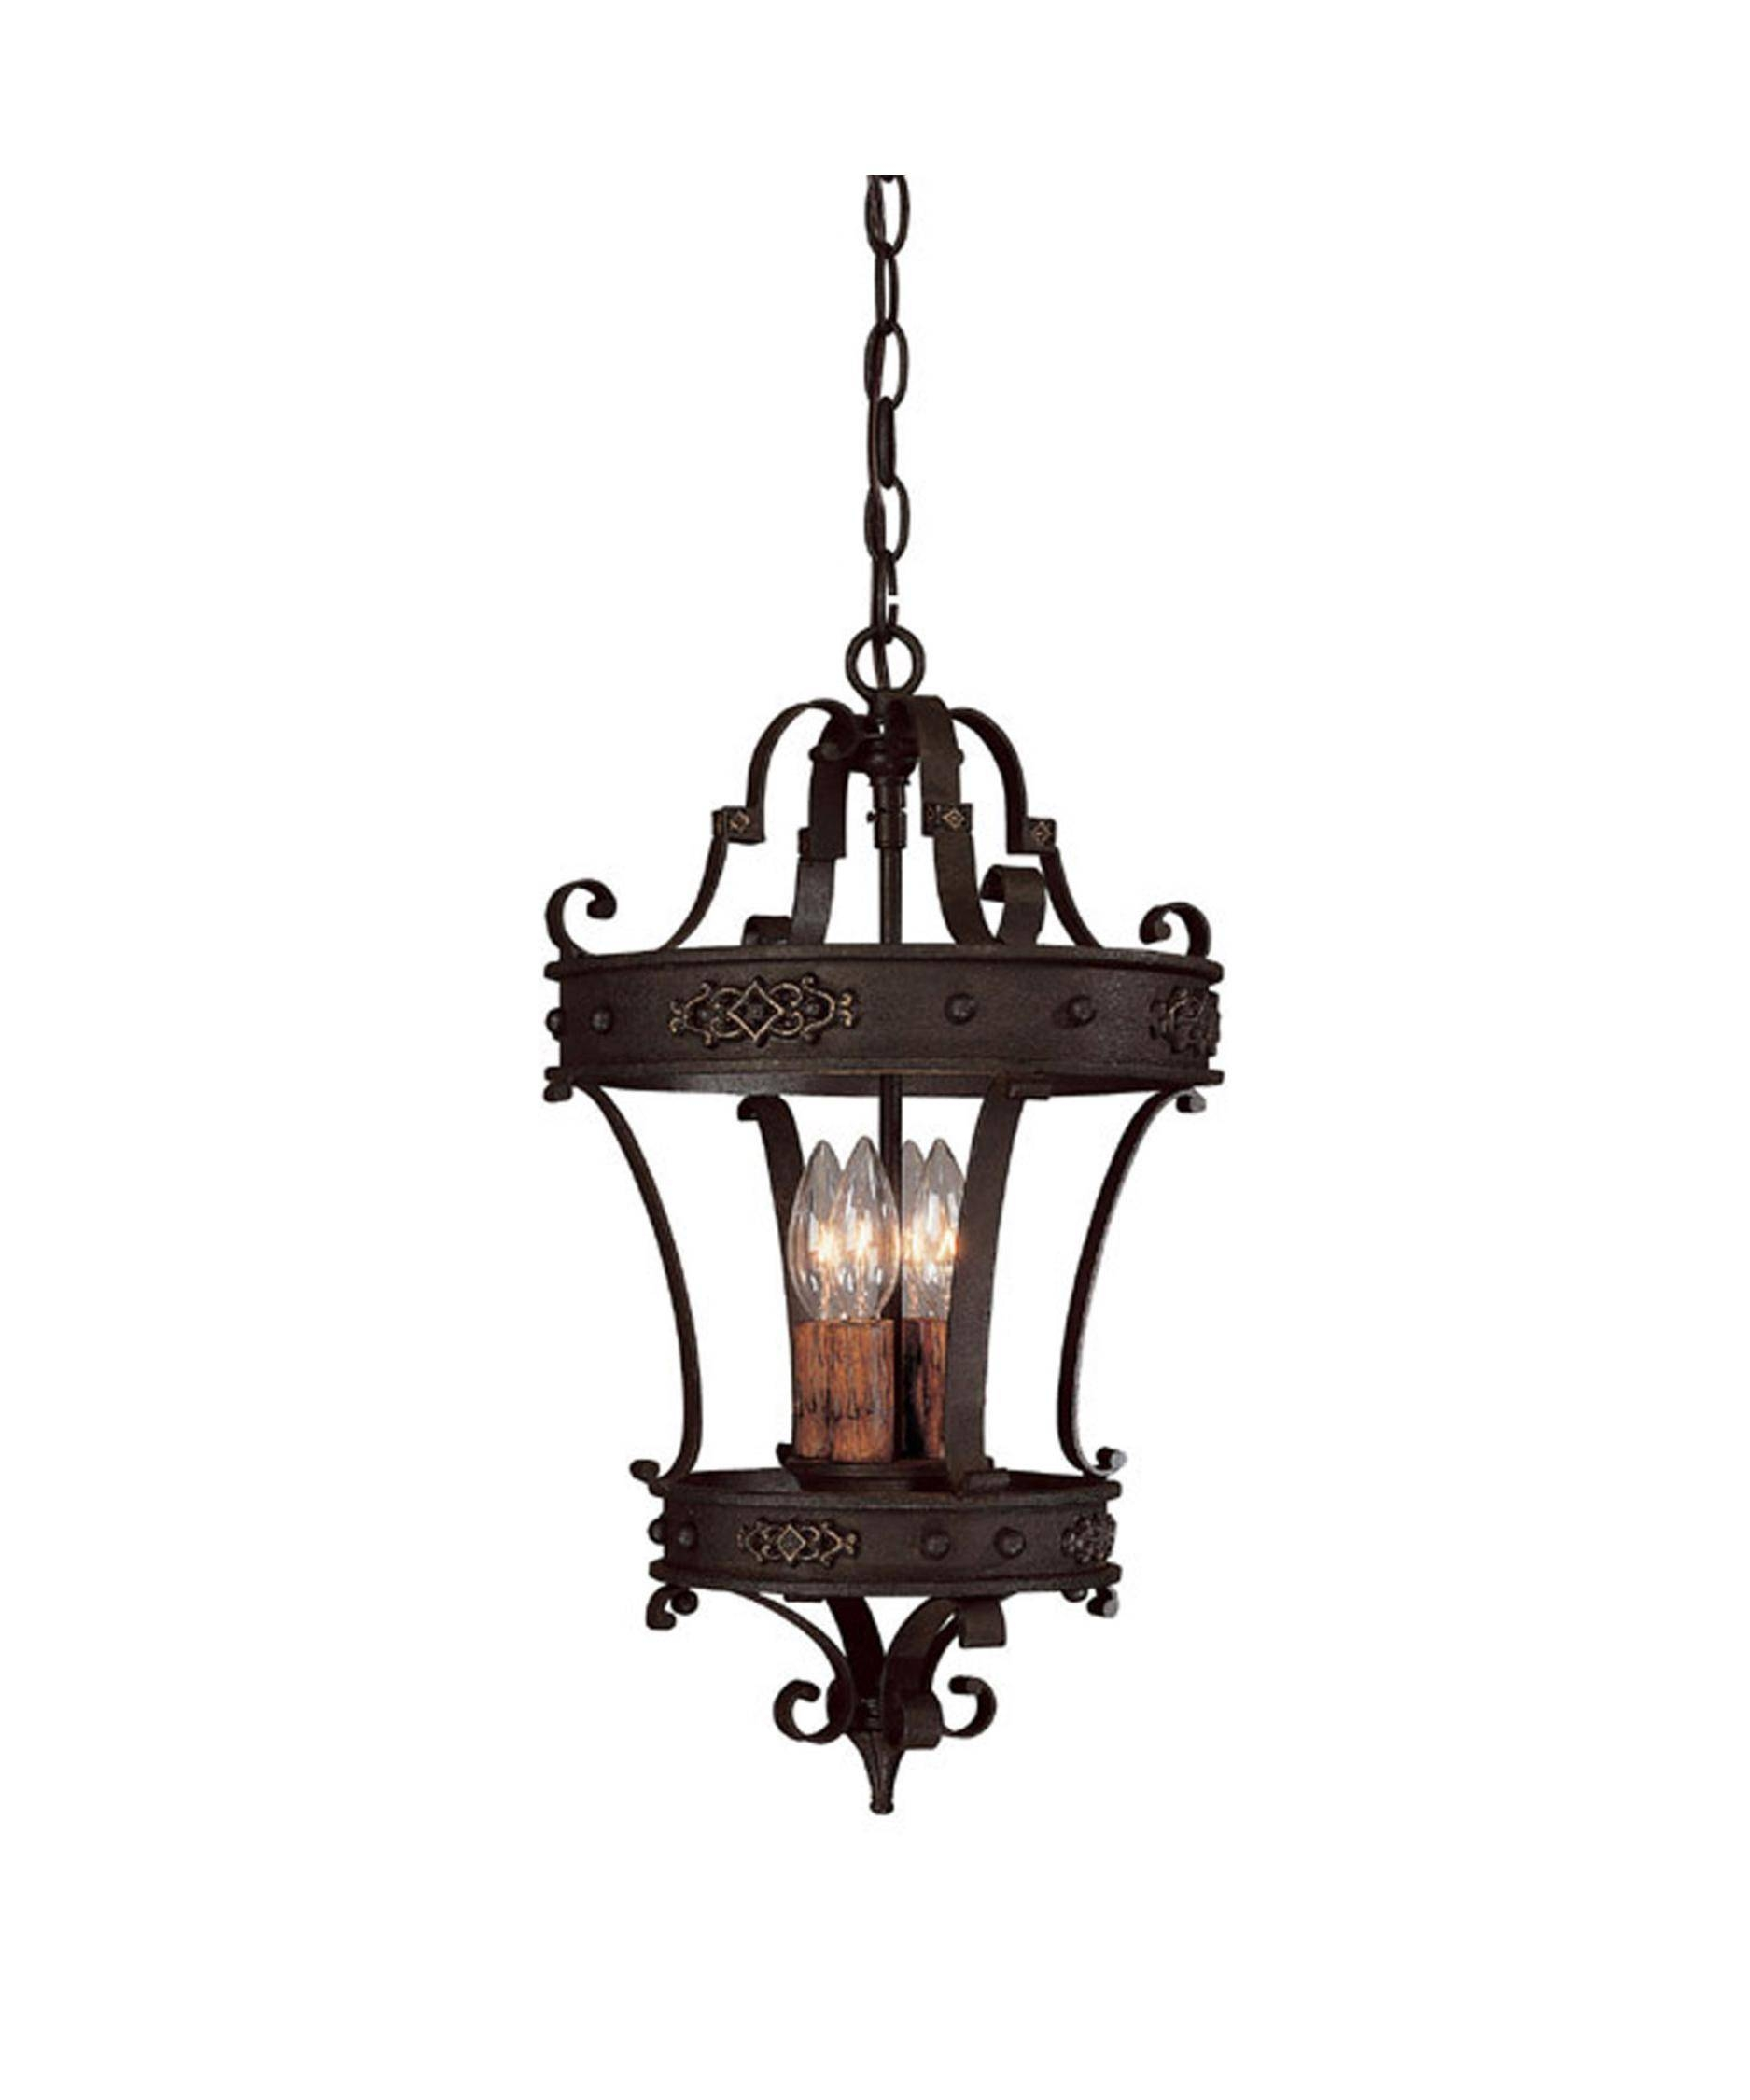 Small Rustic Chandelier | The Best Chandelier 2017 intended for Old World Pendant Lighting (Image 8 of 15)